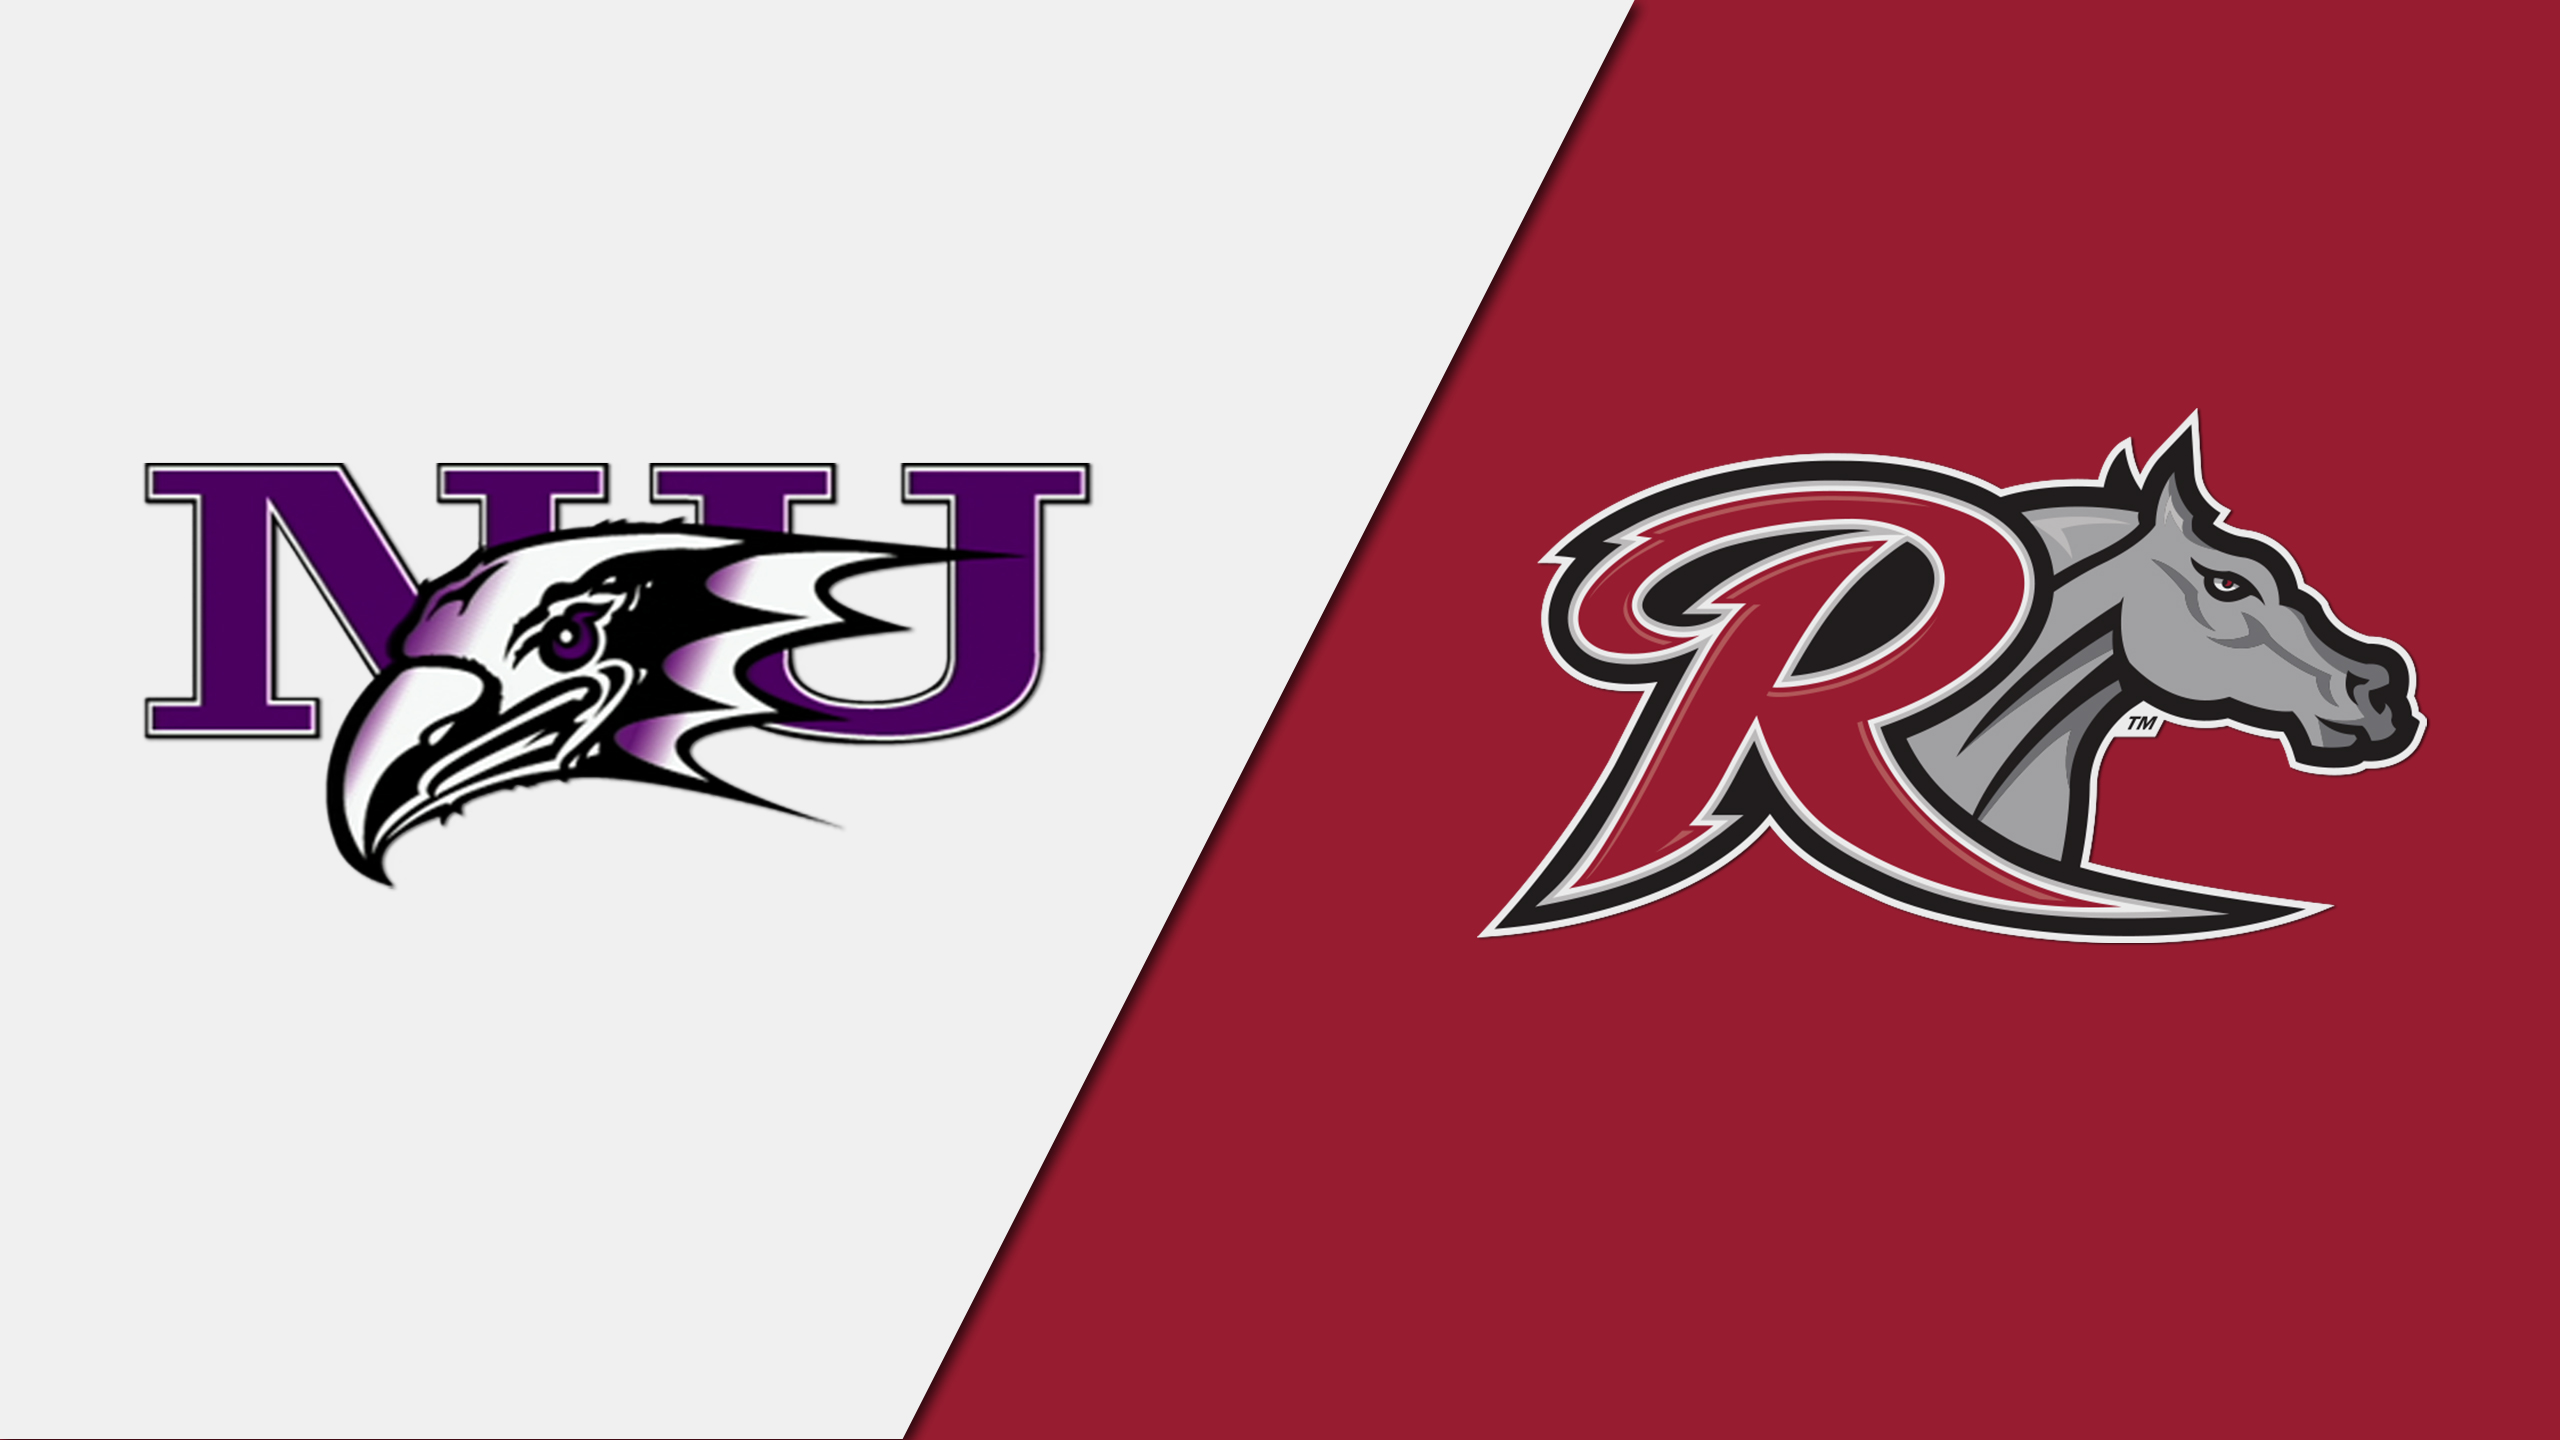 Niagara vs. Rider (Baseball)